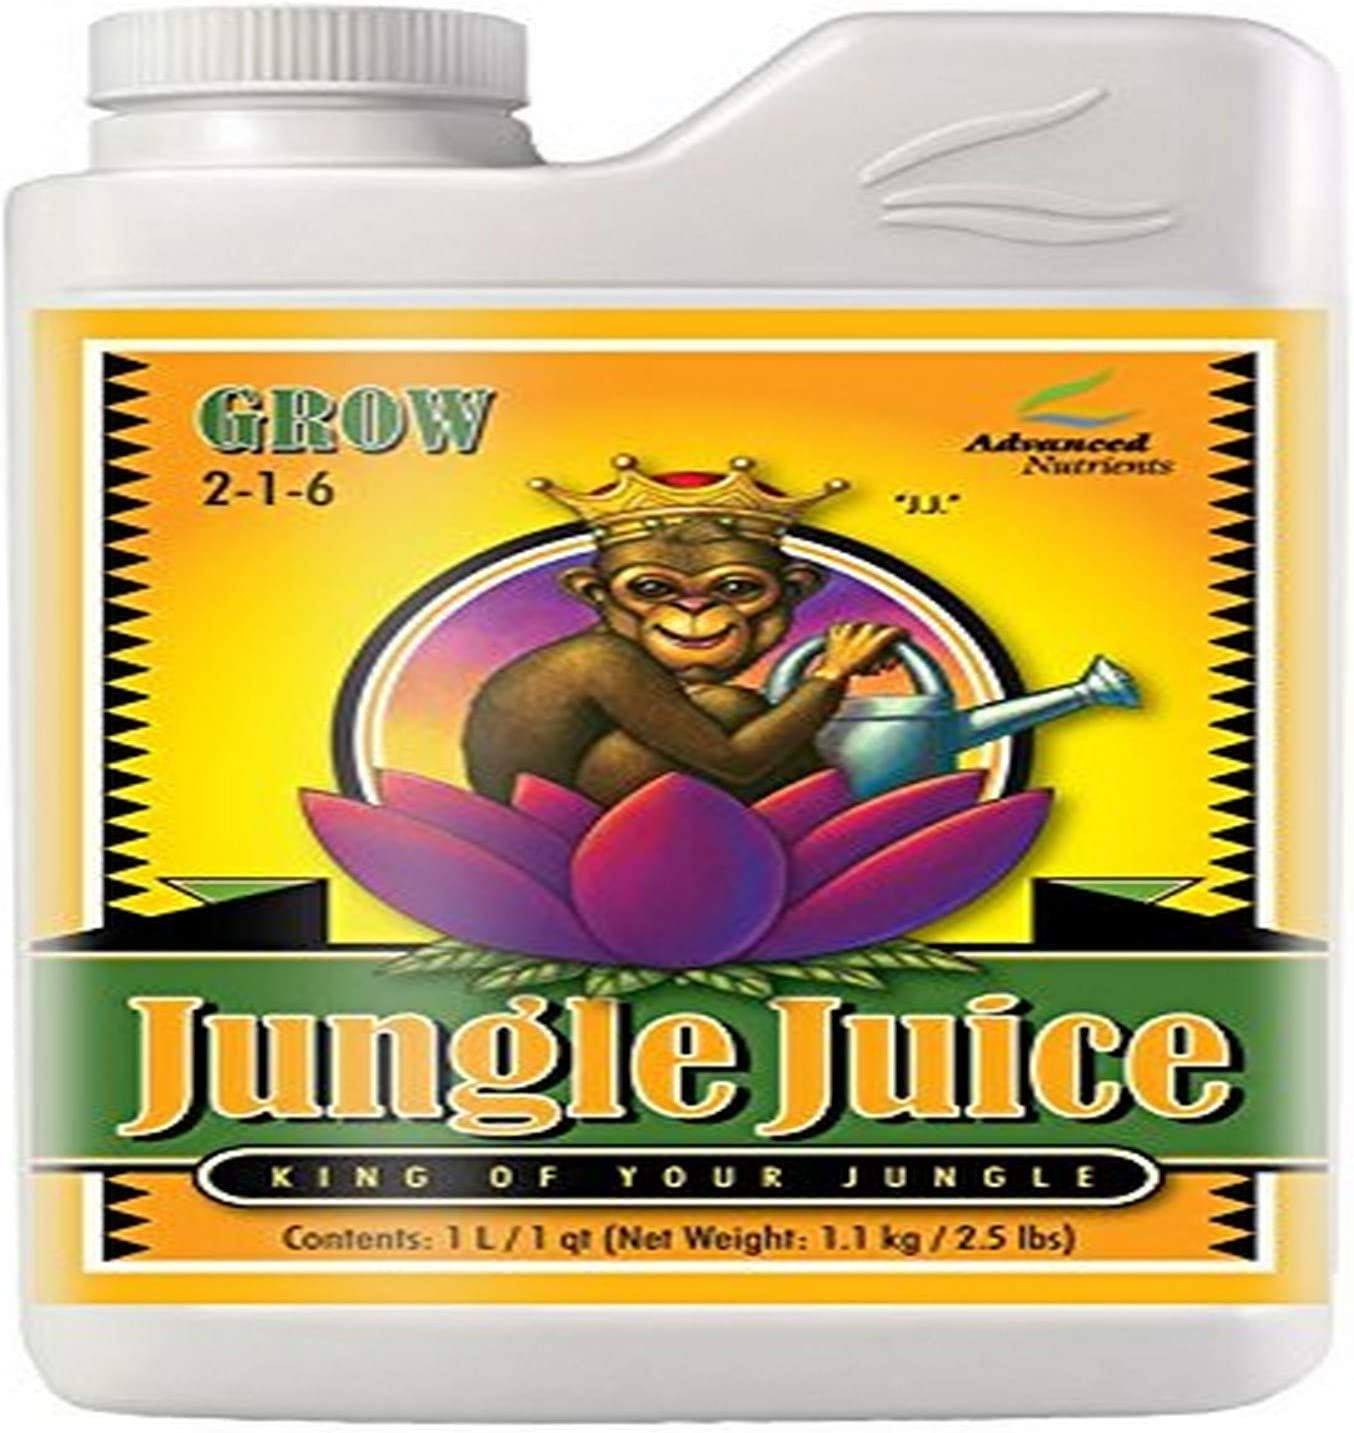 Advanced Nutrients 1725-14 Jungle Juice Grow Fertilizer